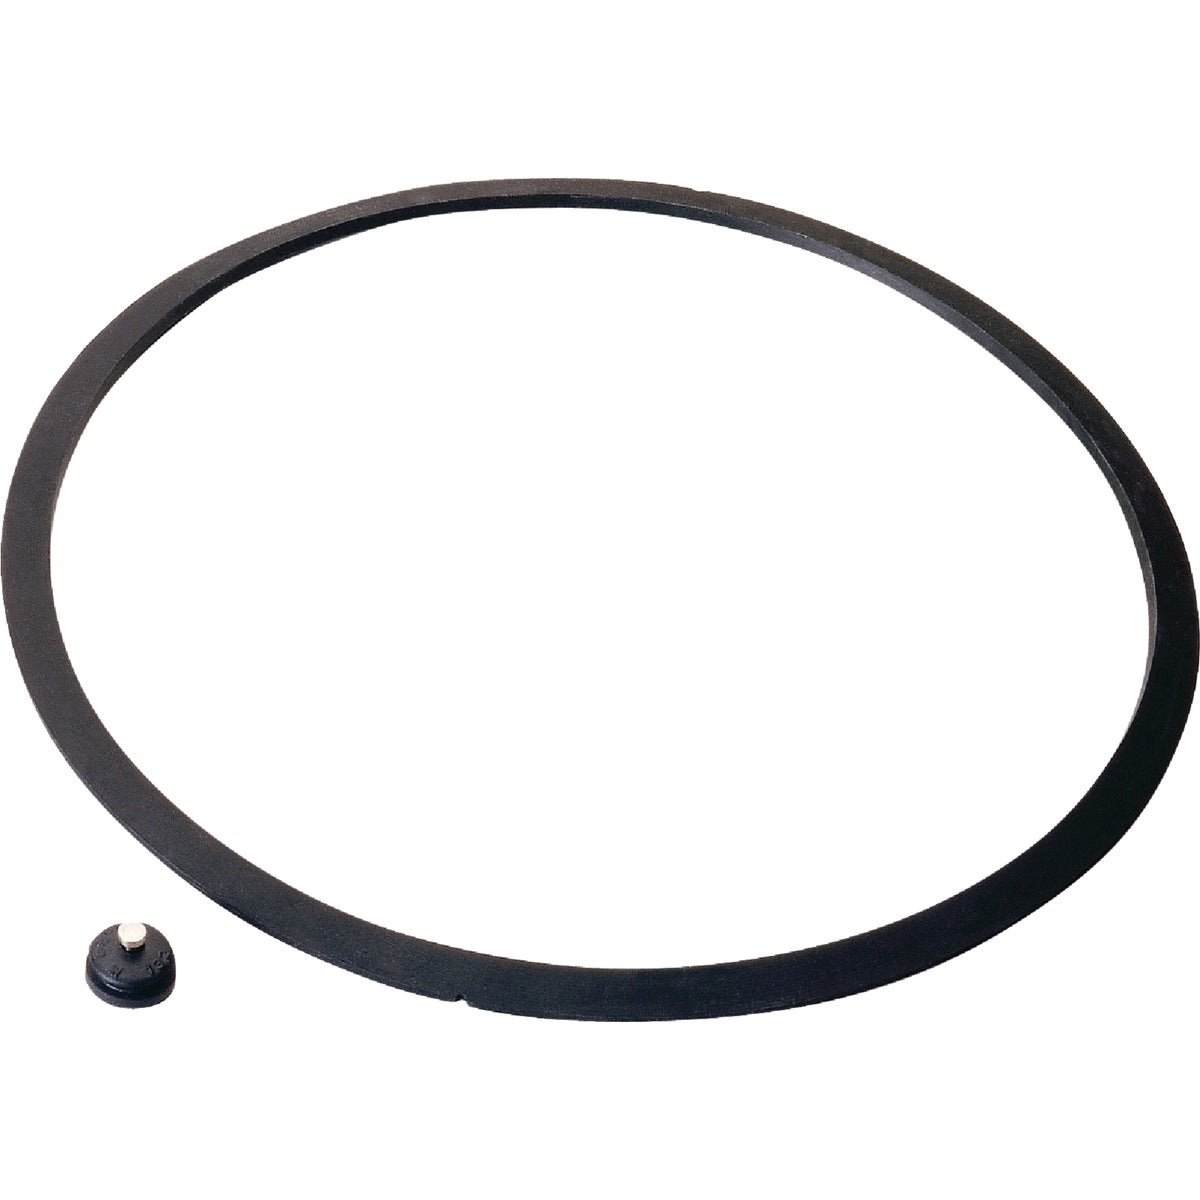 SEALING RING - 09908 by National Presto